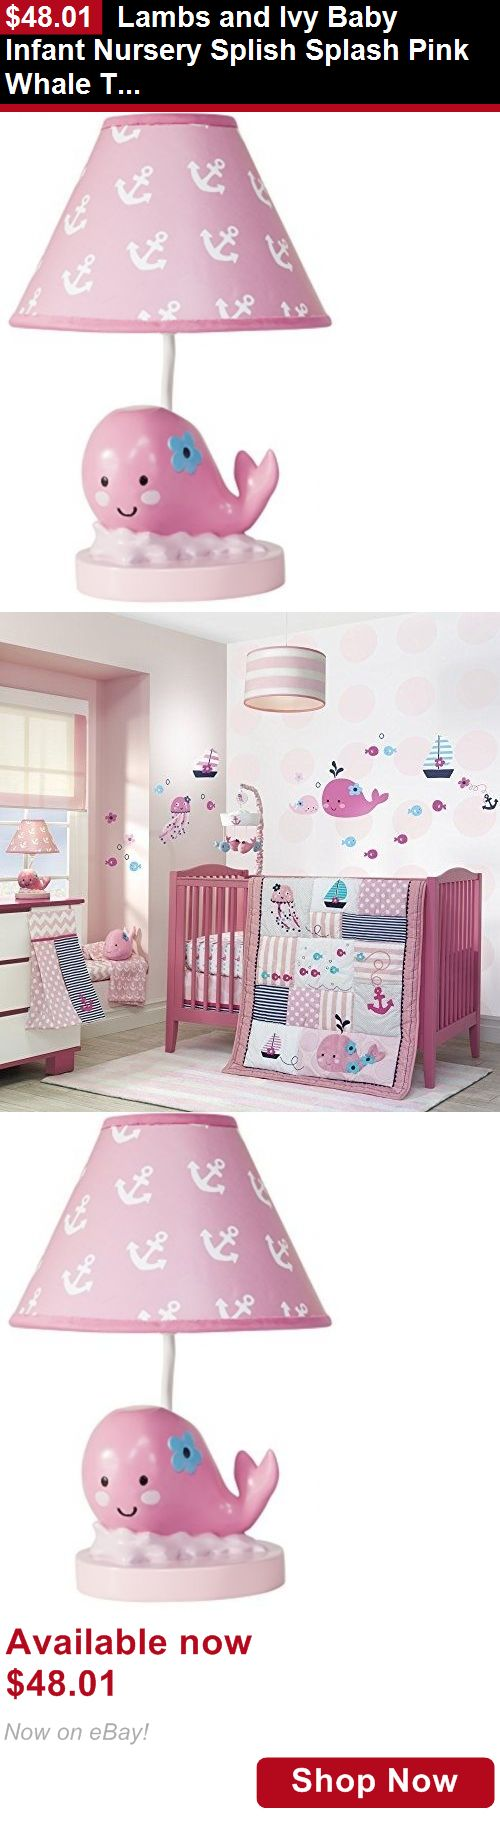 Baby Lamps And Shades: Lambs And Ivy Baby Infant Nursery Splish Splash Pink Whale Table Lamp With Shade BUY IT NOW ONLY: $48.01